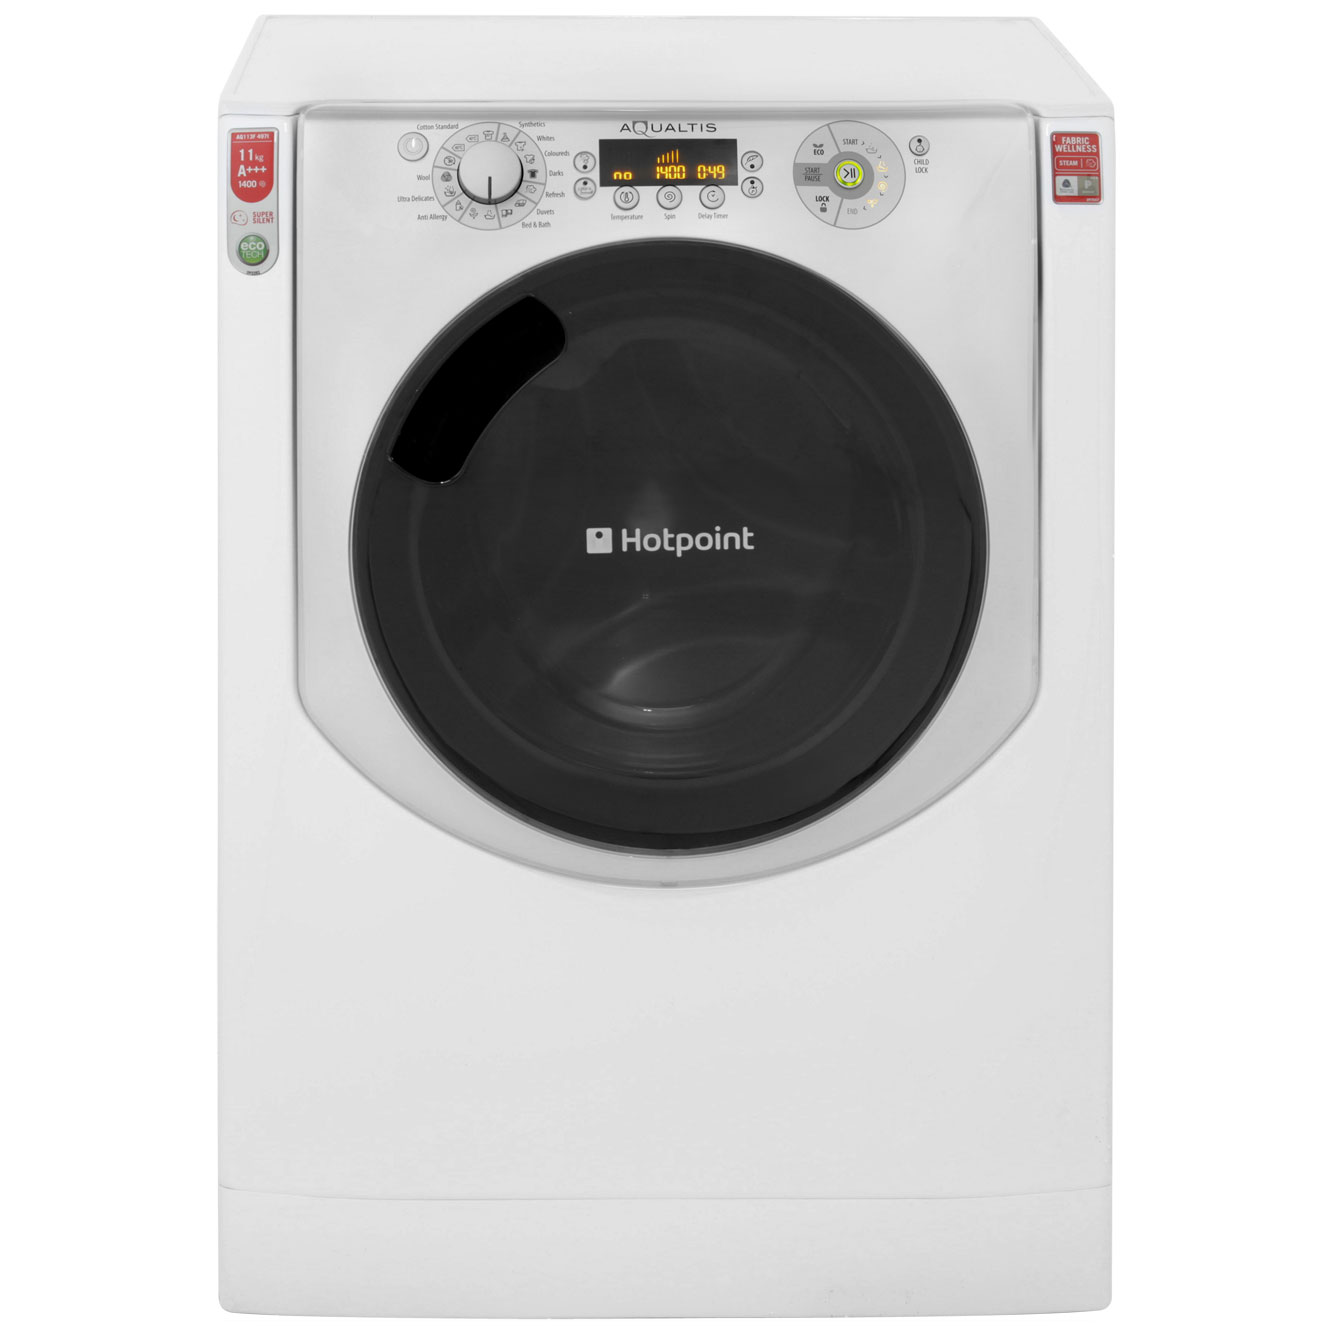 Hotpoint Aqualtis AQ113F497I 11Kg Washing Machine with 1400 rpm - White / Ice